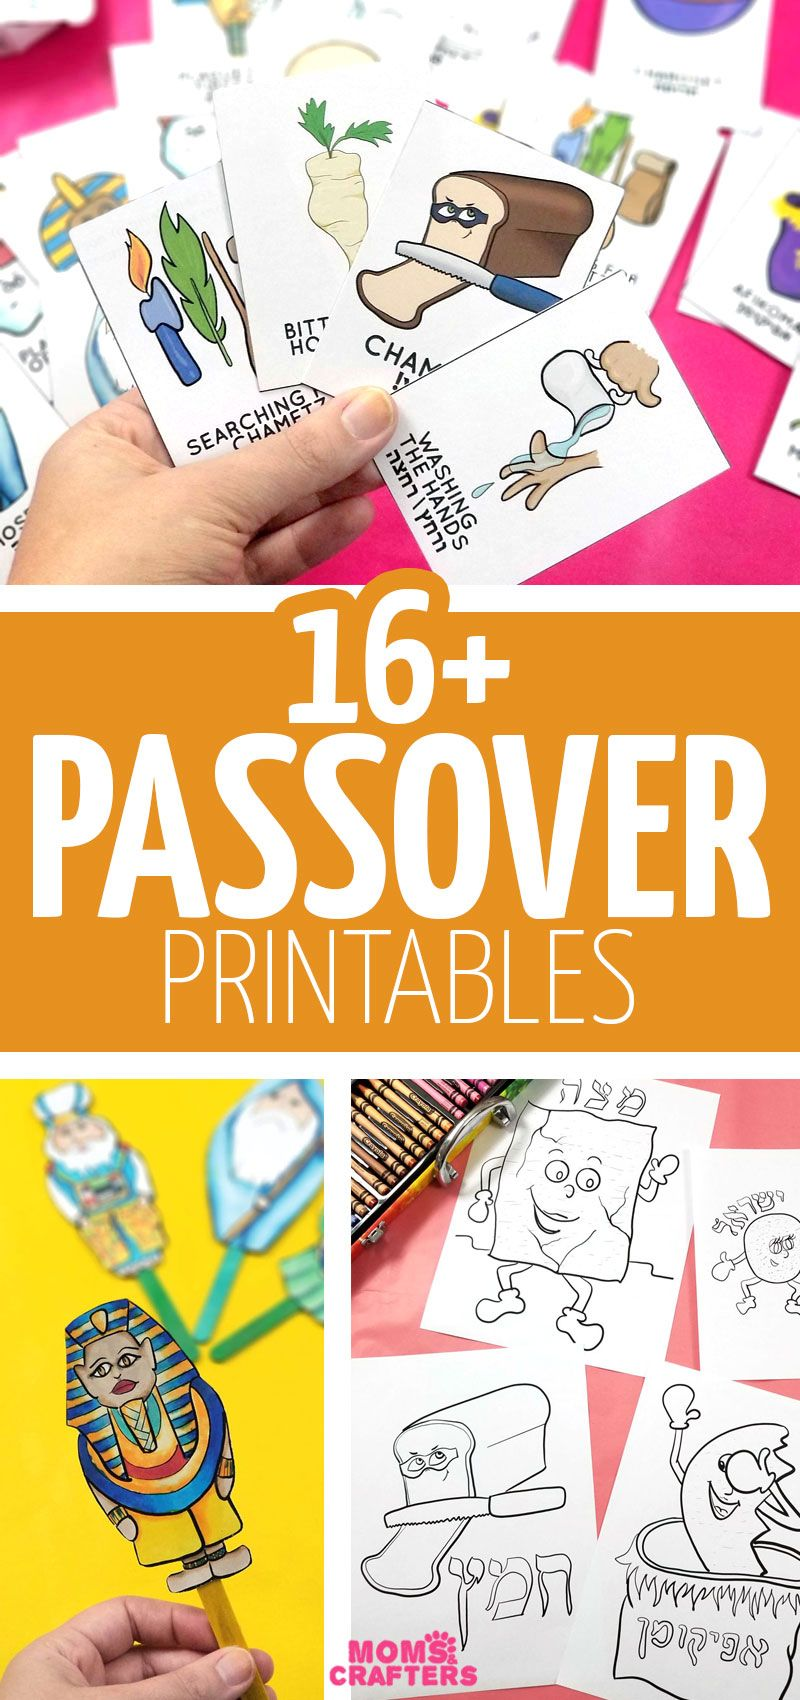 Passover Printables Coloring Pages Games And Decor Passover Printables Passover Crafts Passover Kids [ 1700 x 800 Pixel ]